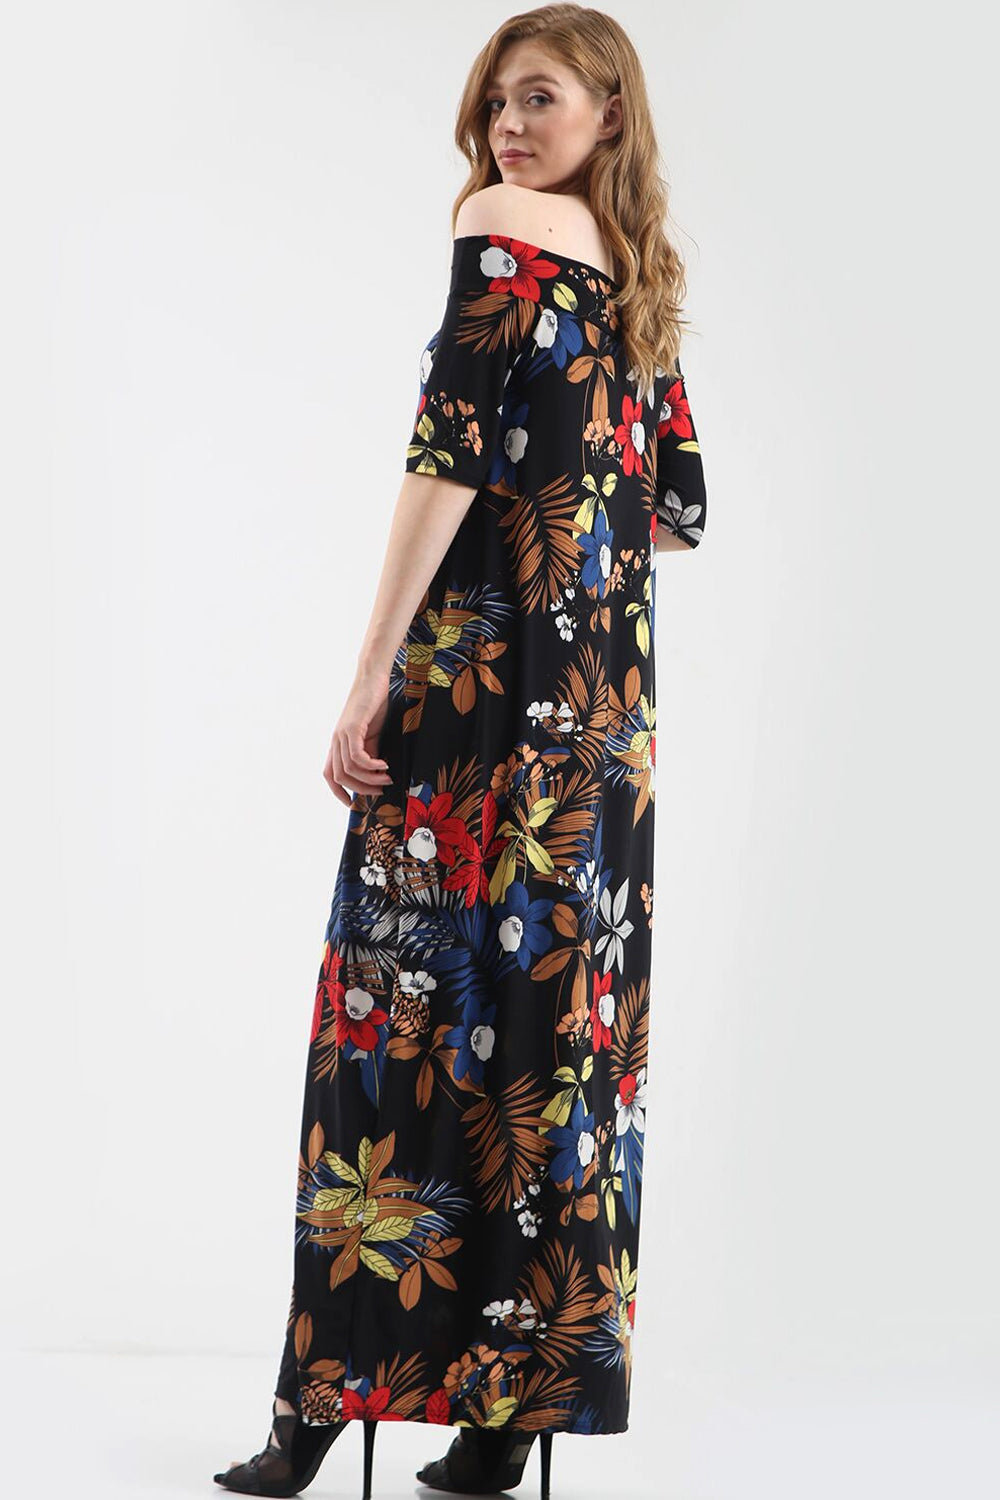 Off Shoulder Black Floral Print Maxi Dress - bejealous-com